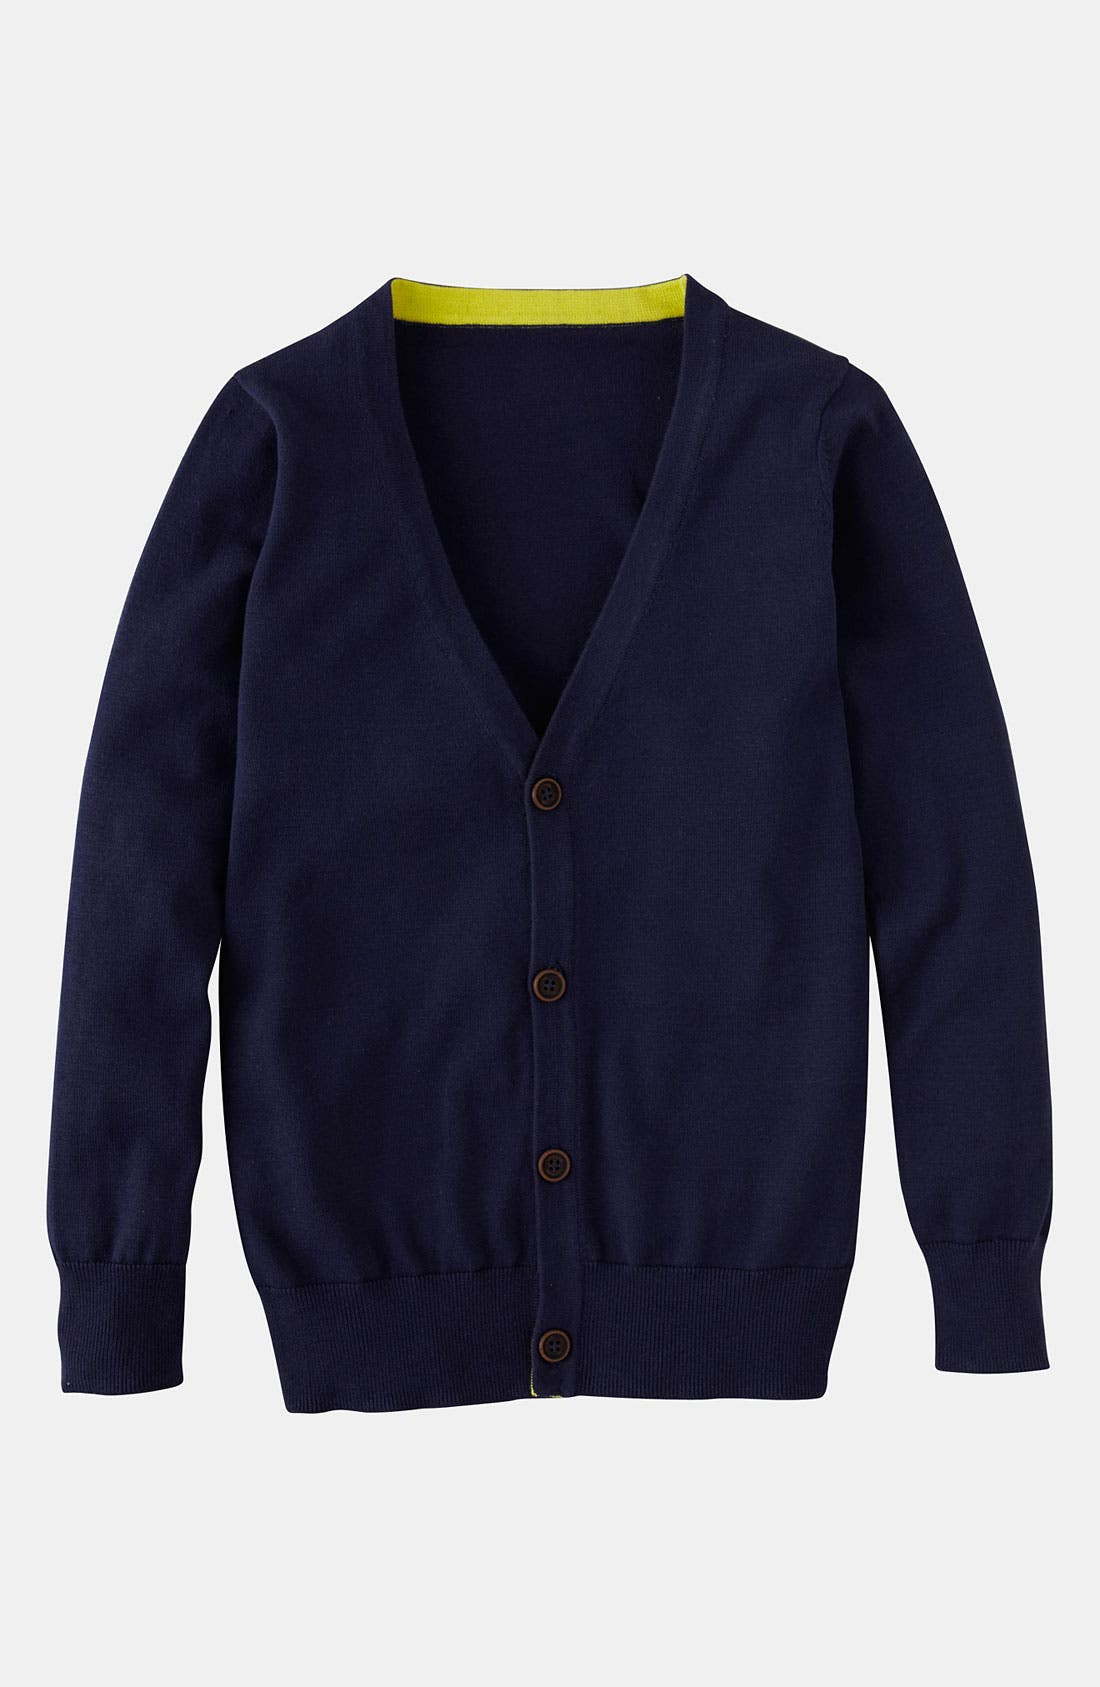 Main Image - Johnnie b Cardigan (Big Boys)